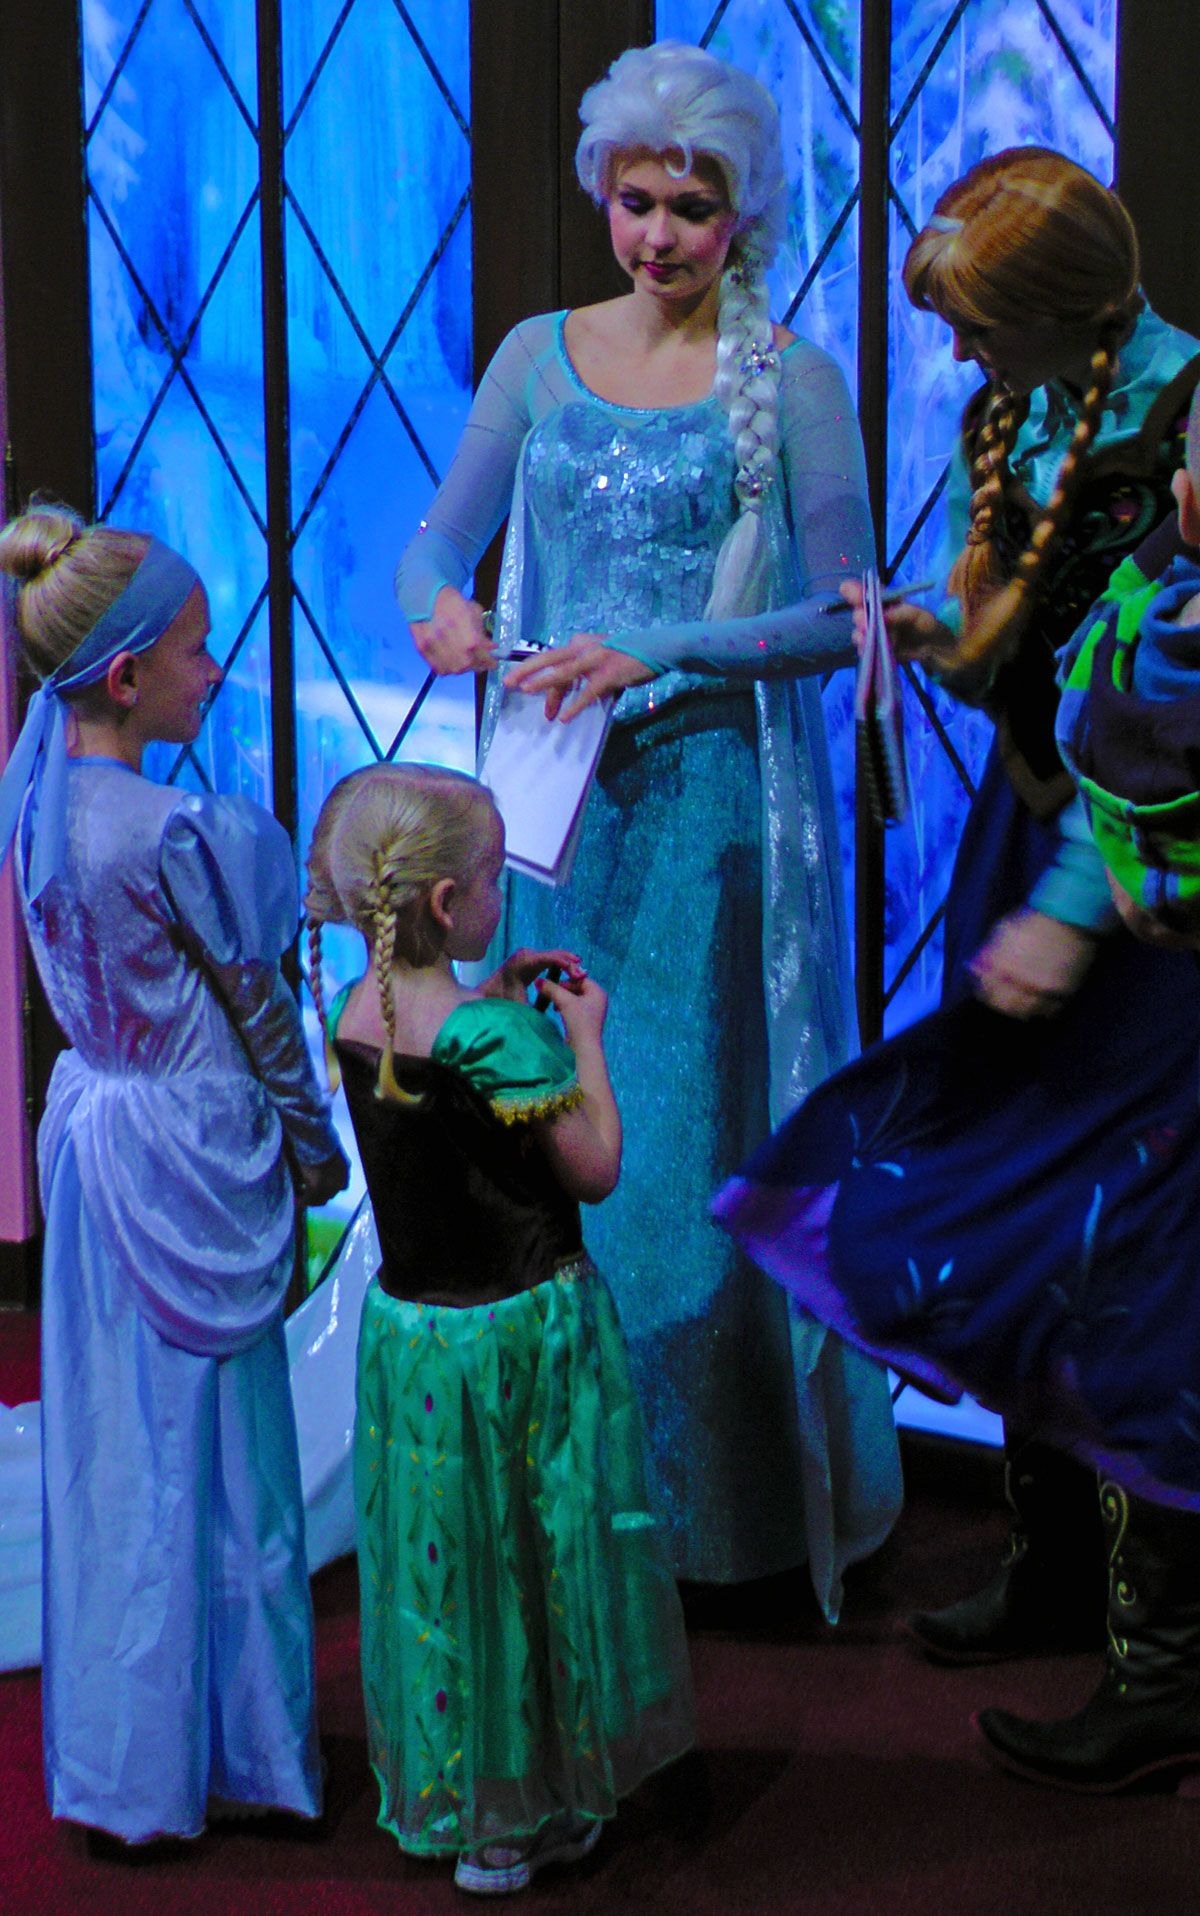 Where how to meet anna elsa at disneyland elsa family trips from staying at an off site hotel to setting a souvenir budget were sharing our top tips for saving money at disneyland resort kristyandbryce Gallery